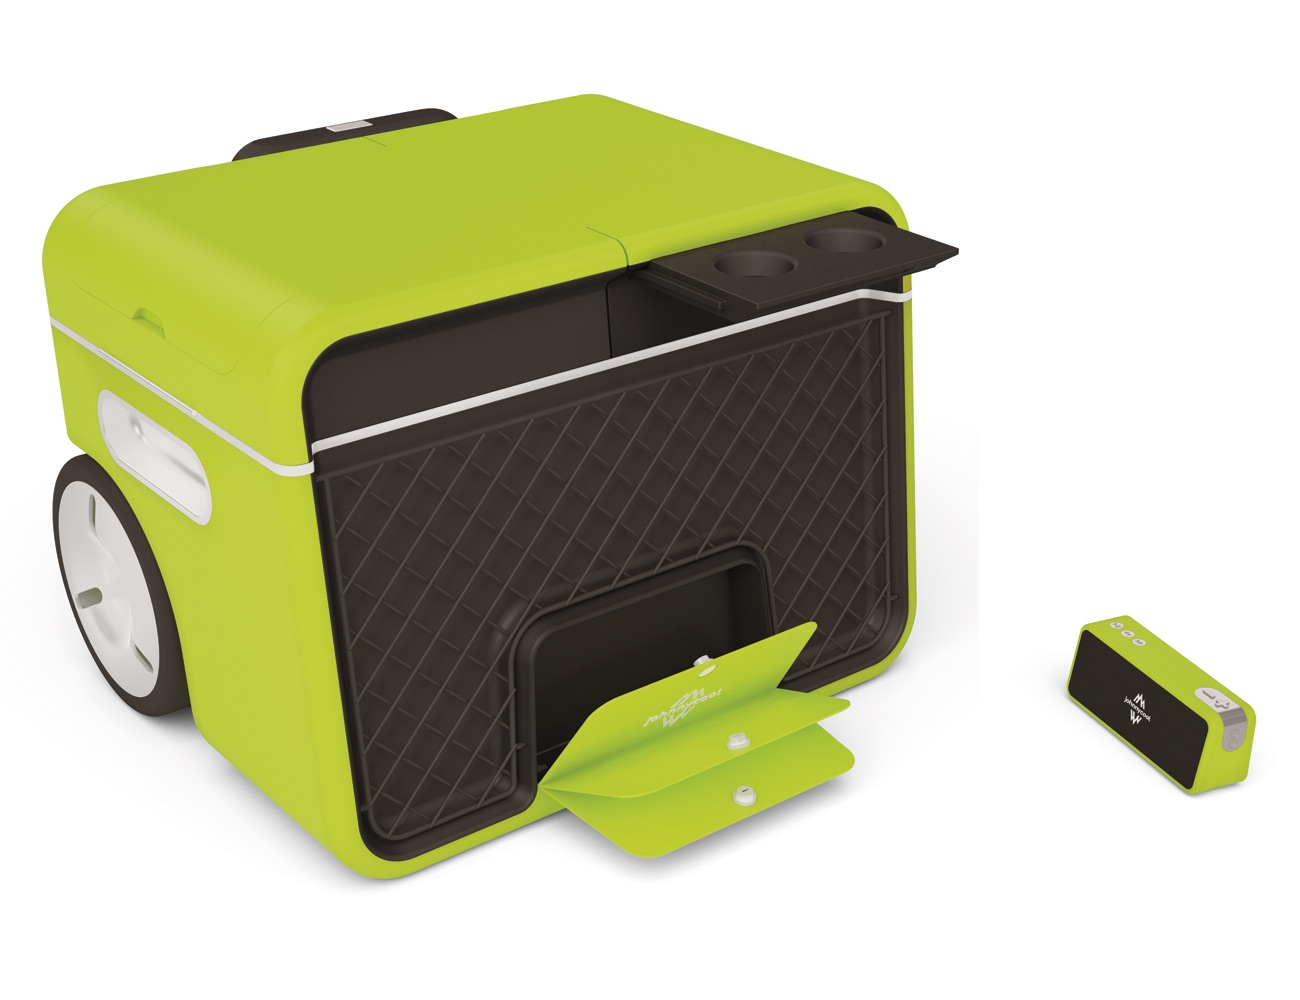 Johnny Cool is the world's First sustainable cooler